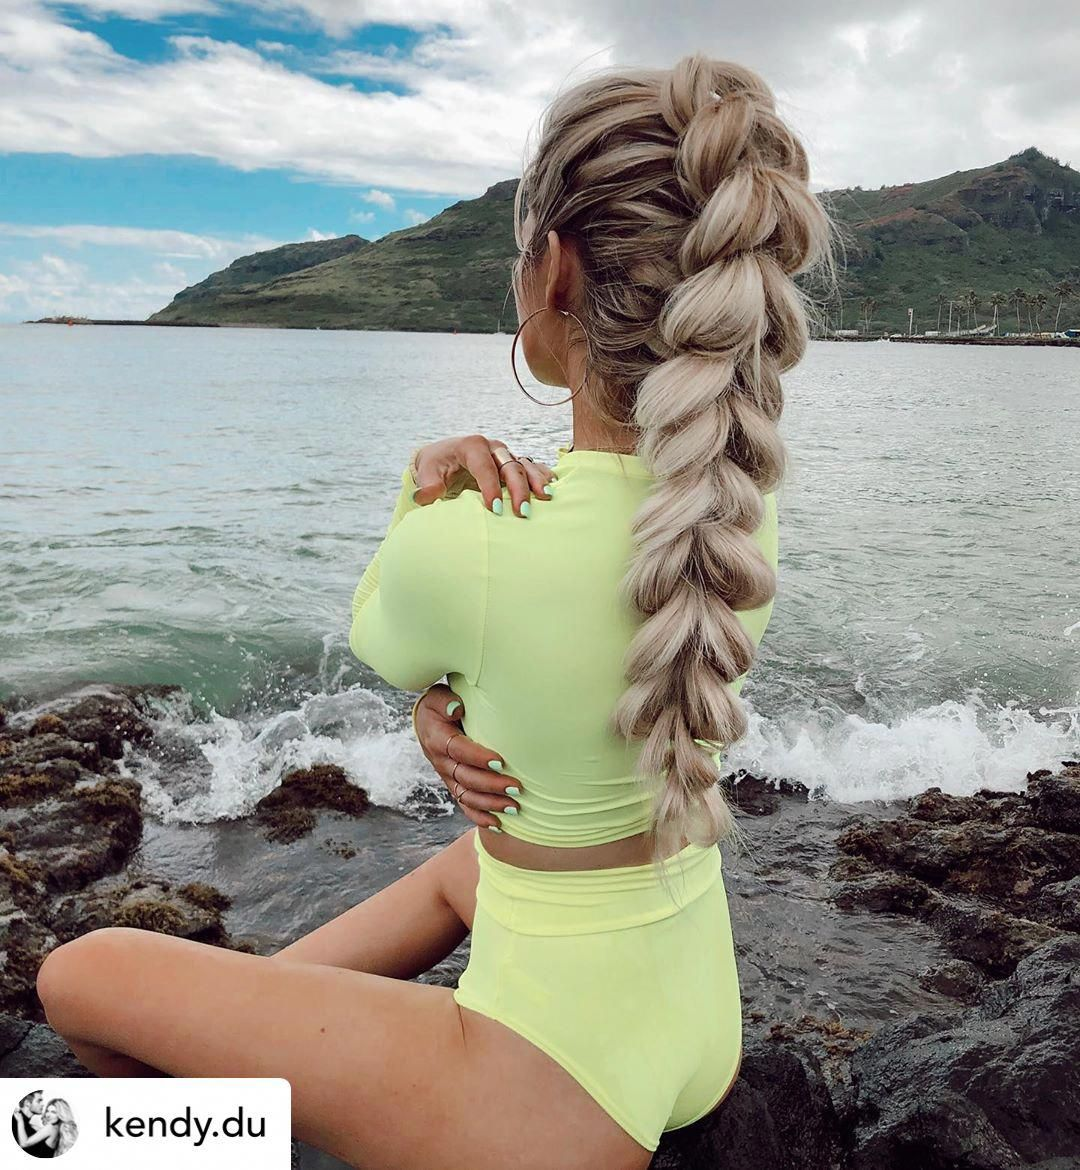 Pull-through mohawk braids are one of my favorite workout hairstyles! Let's kick off the new year ri...